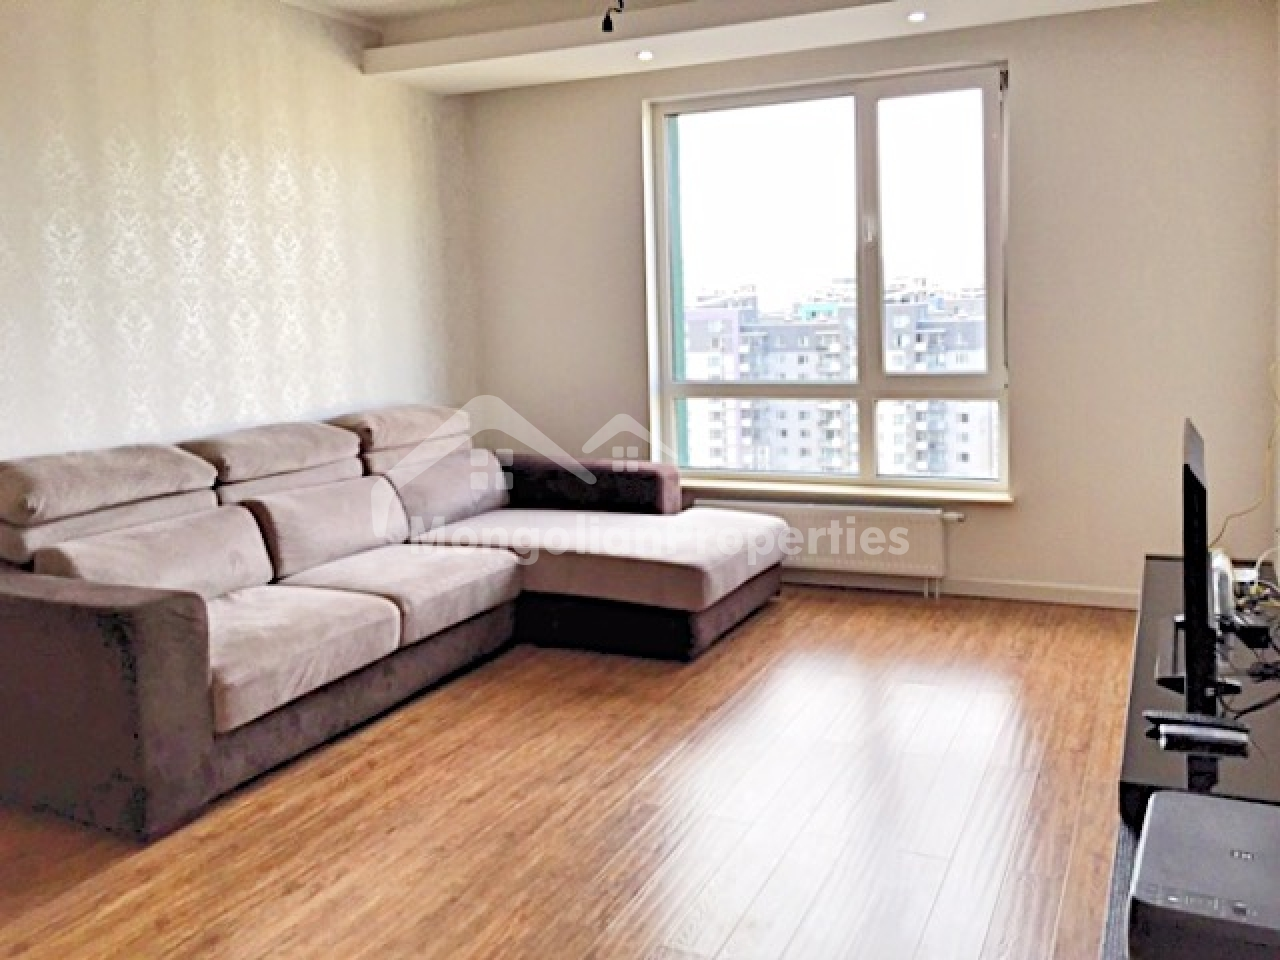 FOR RENT  2 bedroom apartment in Parkside residence for reasonable price    Mongolian Properties   A Real Estate Investment Company. FOR RENT  2 bedroom apartment in Parkside residence for reasonable